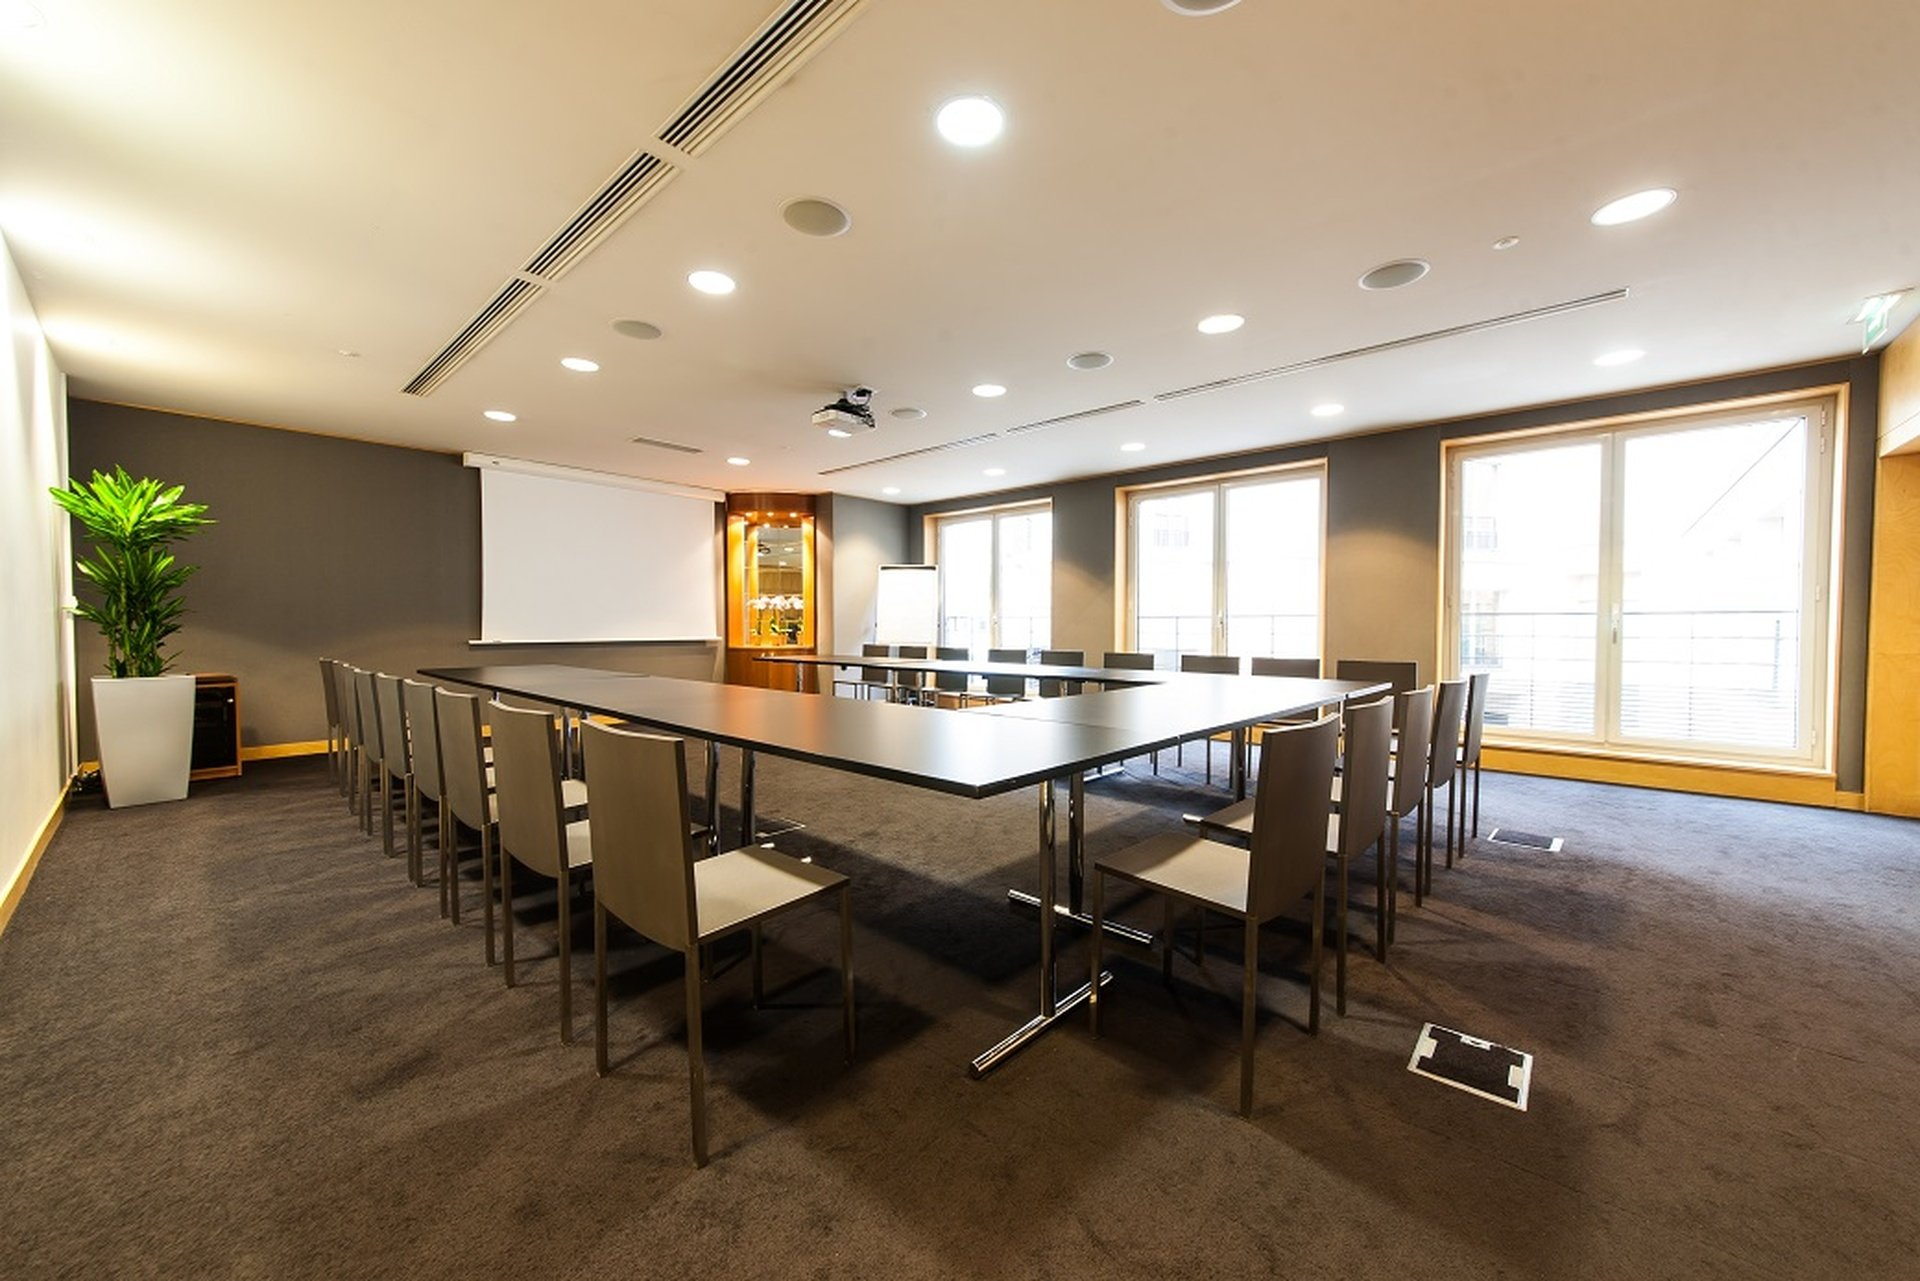 Paris corporate event venues Meetingraum SERVCORP - Edouard VII Conference Center - Tokyo Meeting room image 0